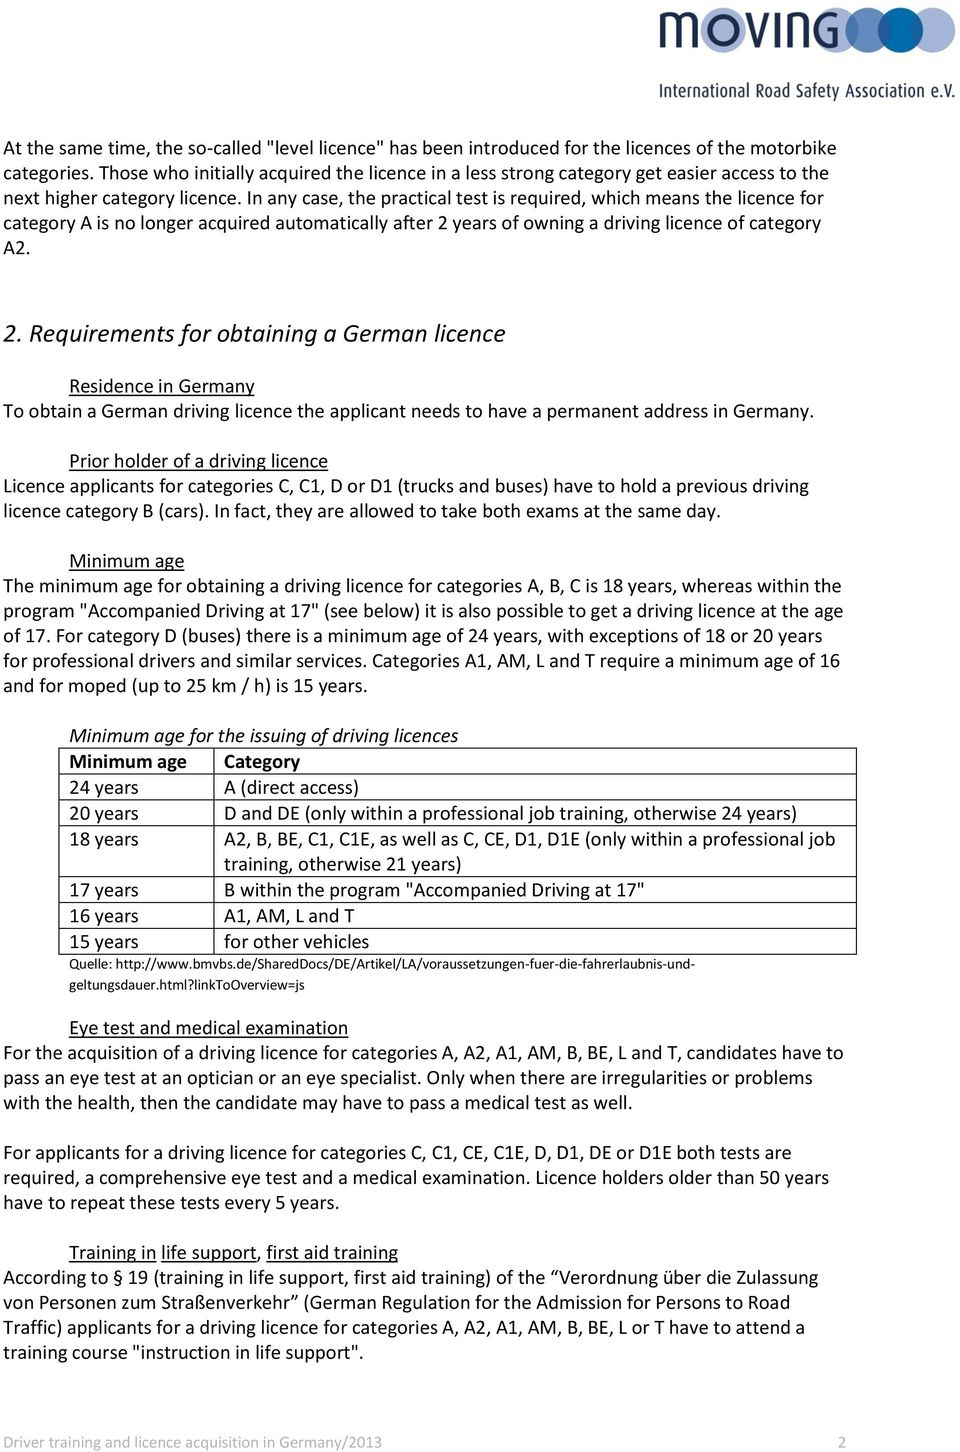 Driver training and licence acquisition in Germany - PDF